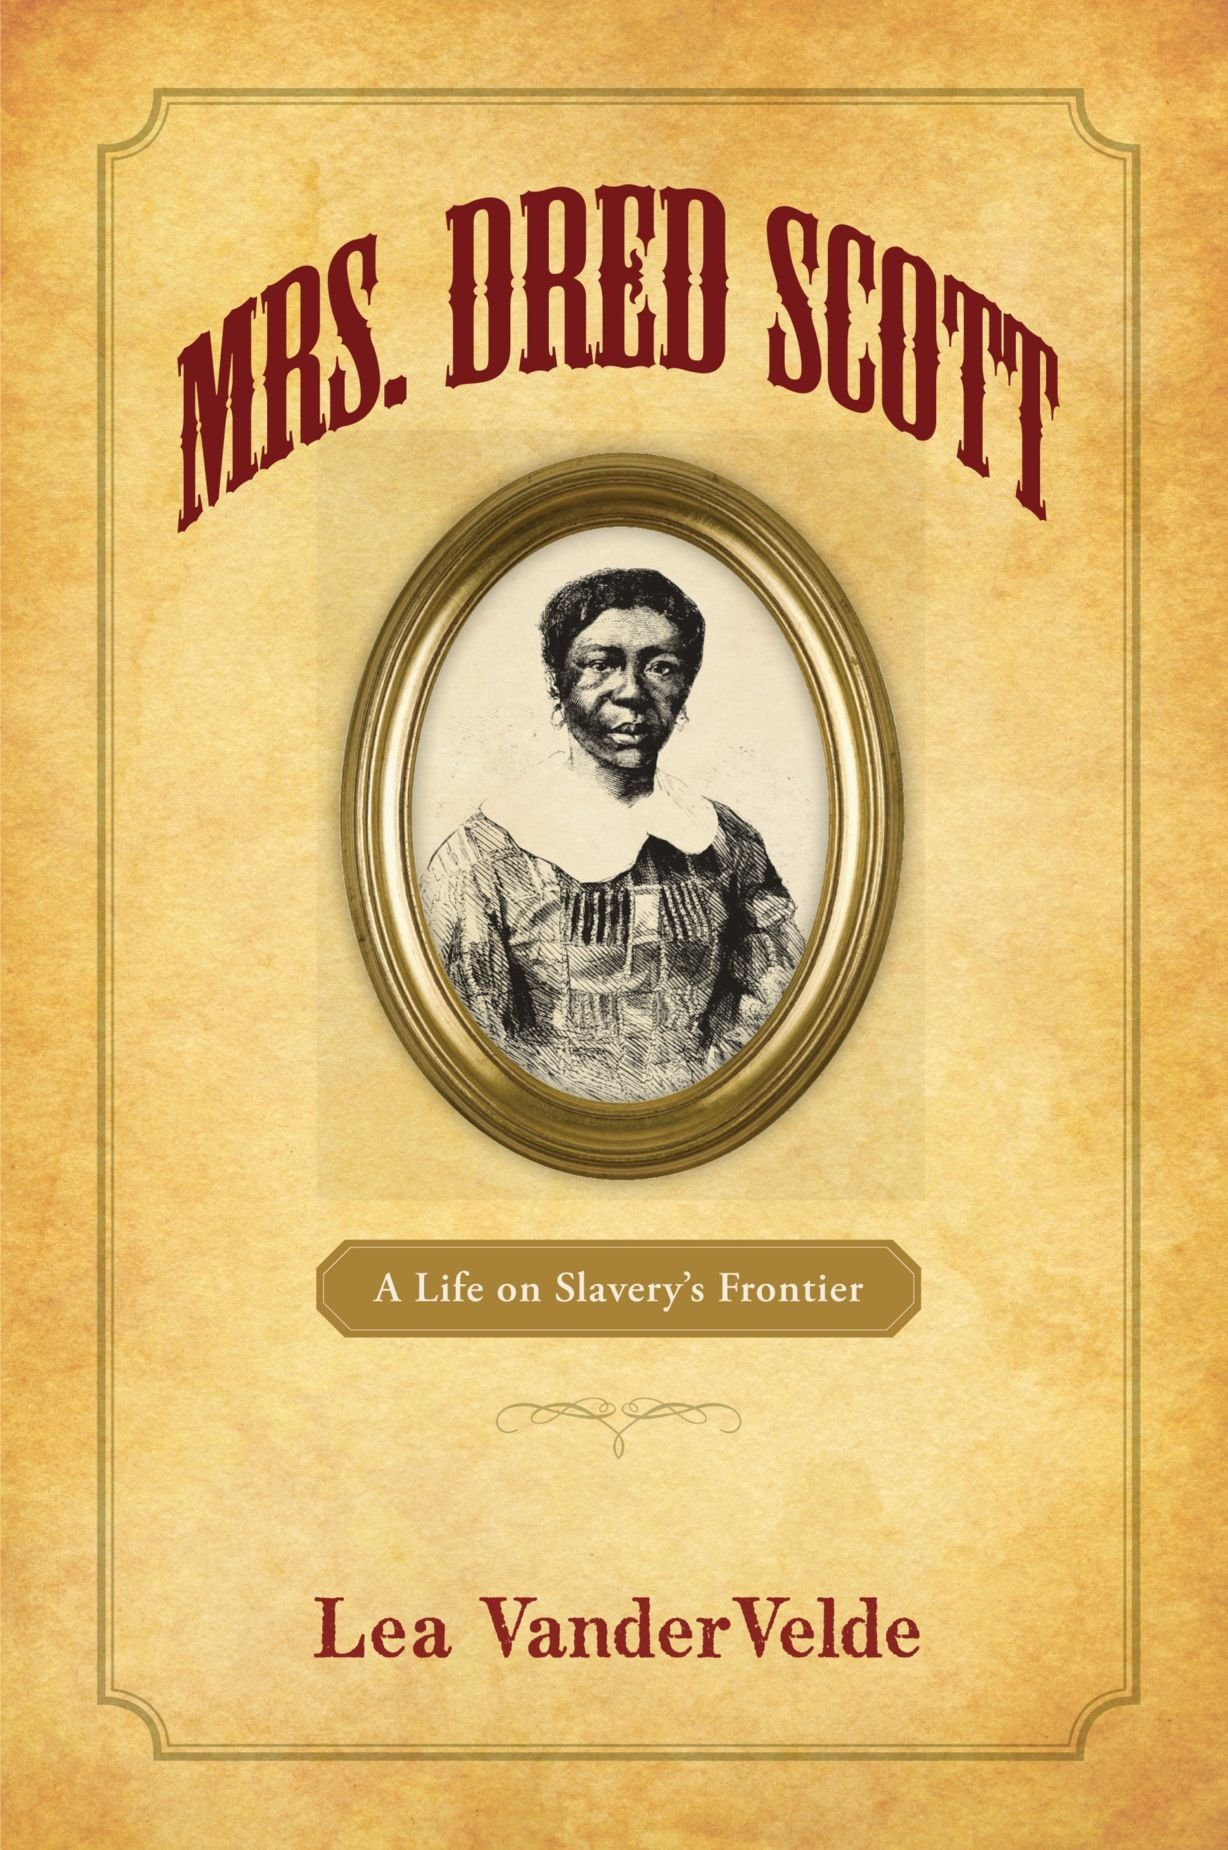 Mrs. Dred Scott: A Life on Slavery's Frontier by Oxford University Press